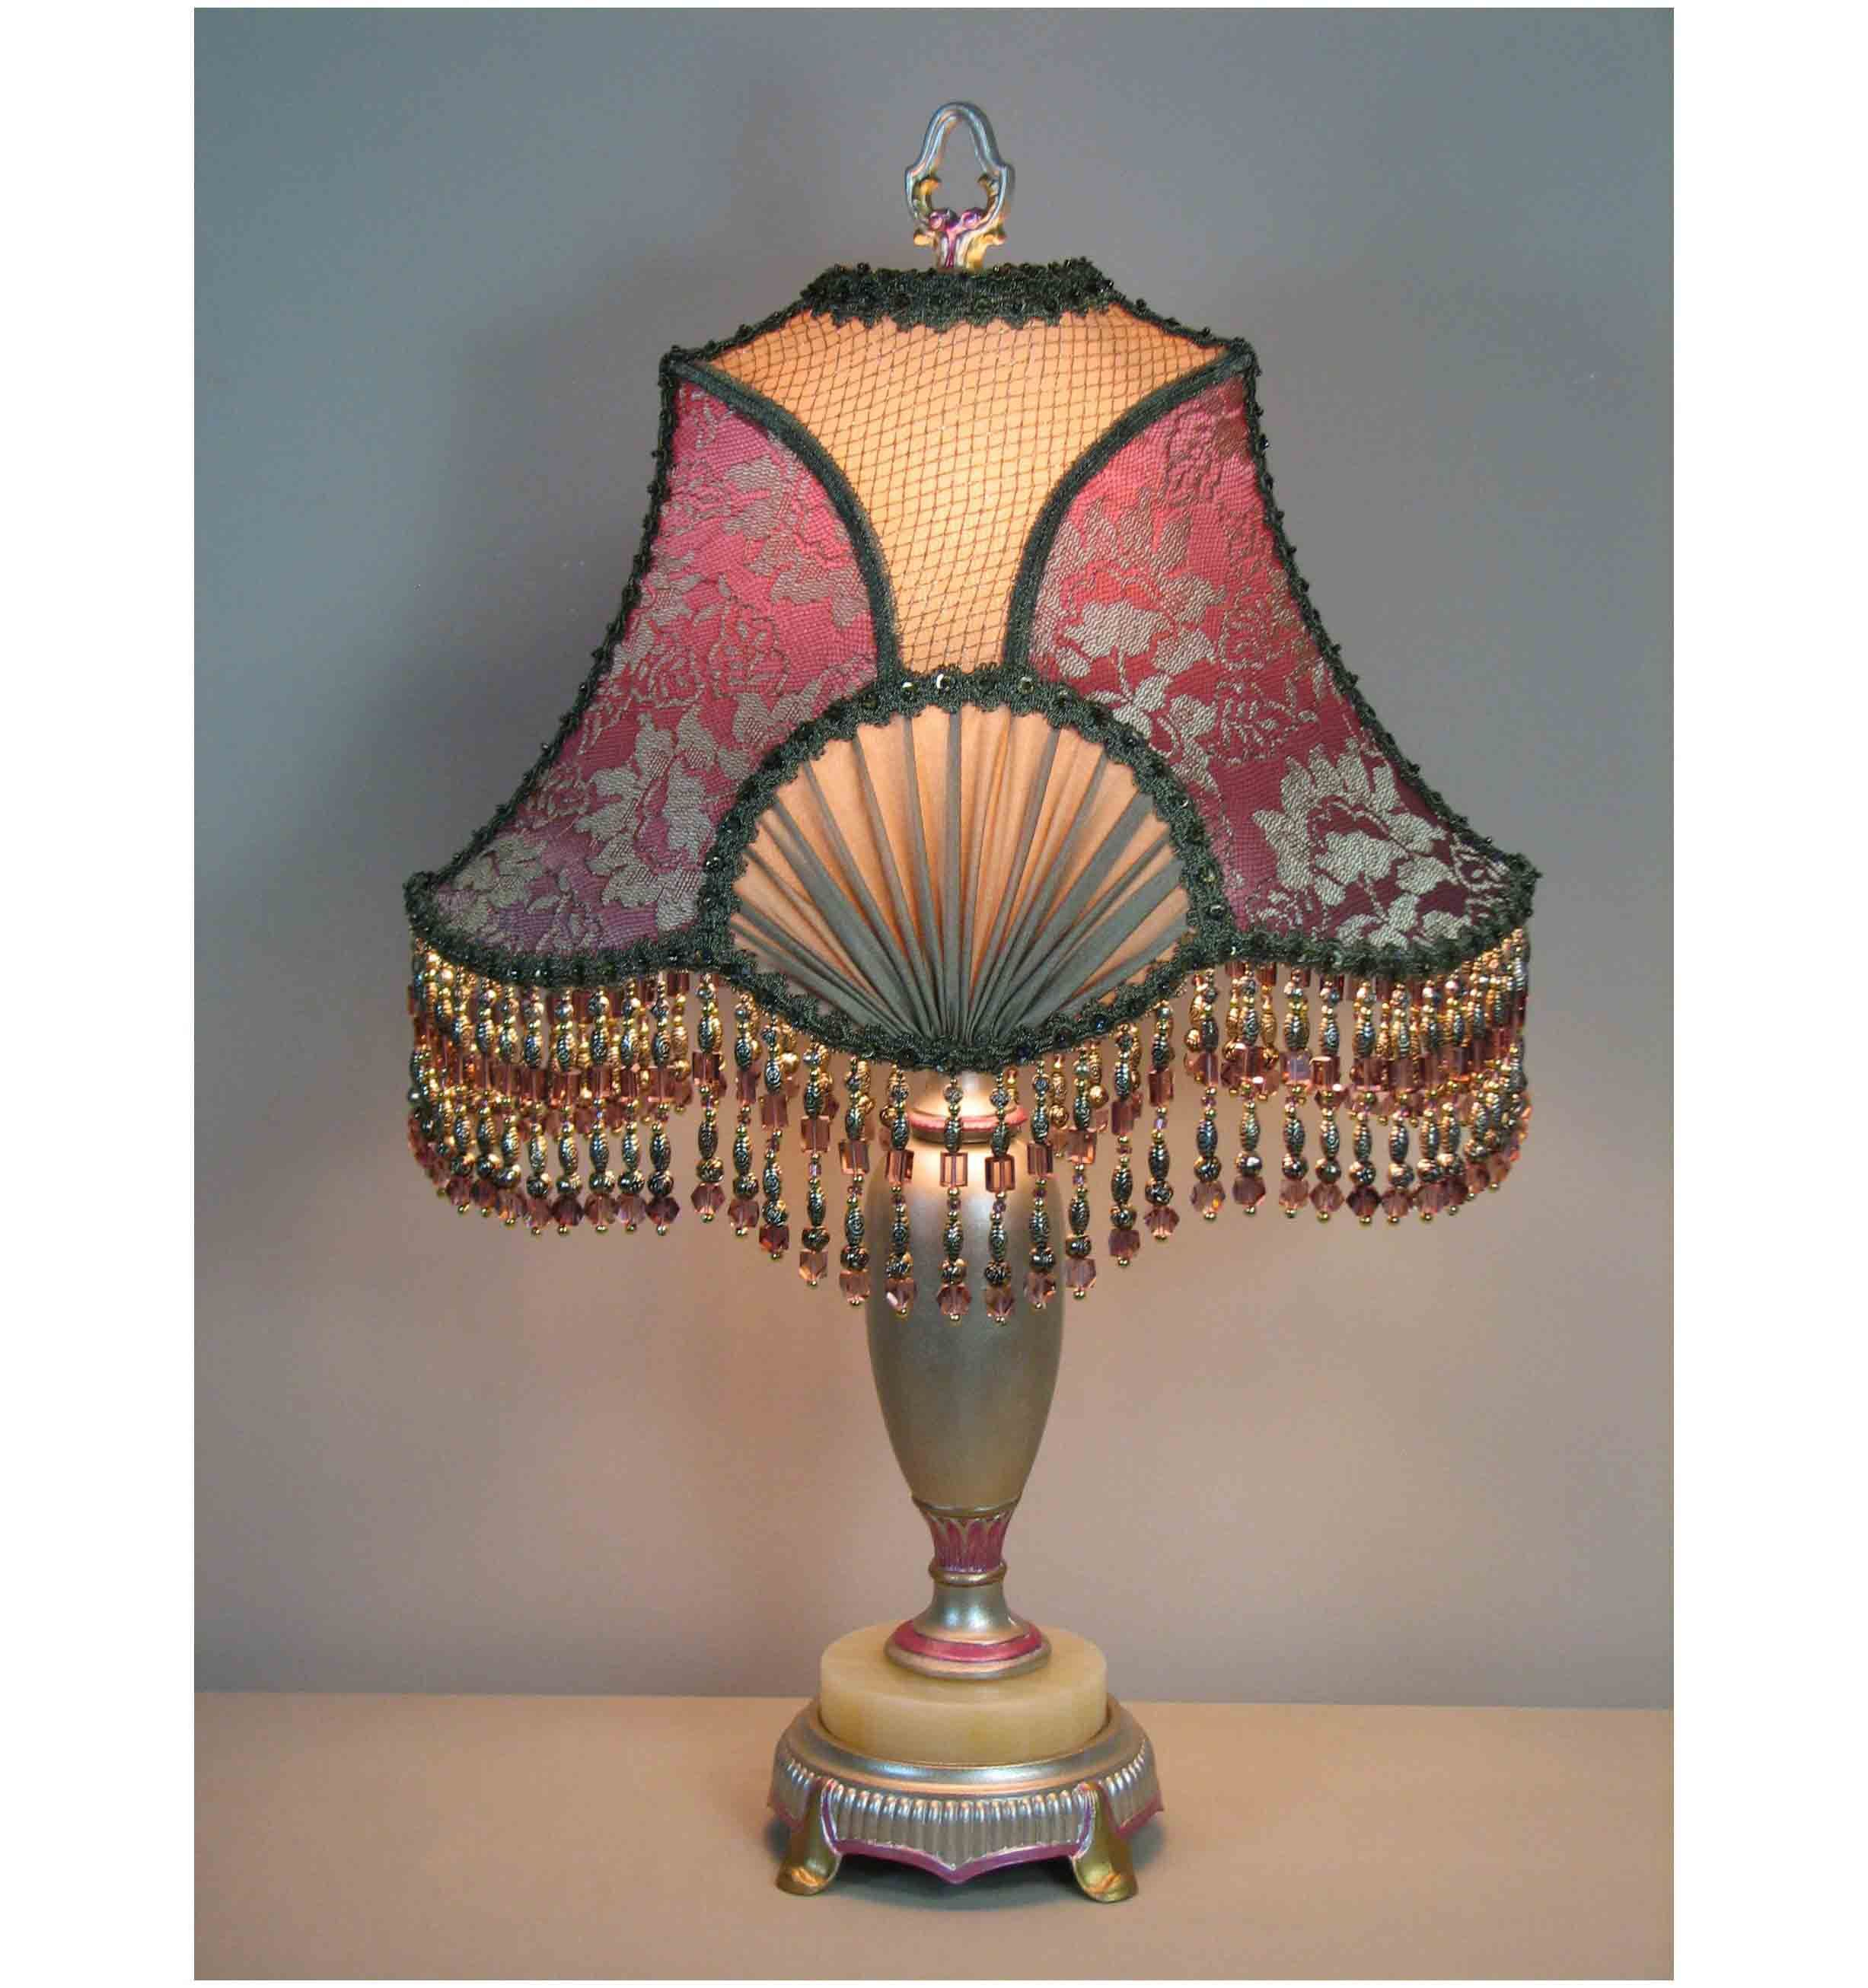 Vintage Table Lamp With Victorian Lamp Shade By Shadezofmichelle